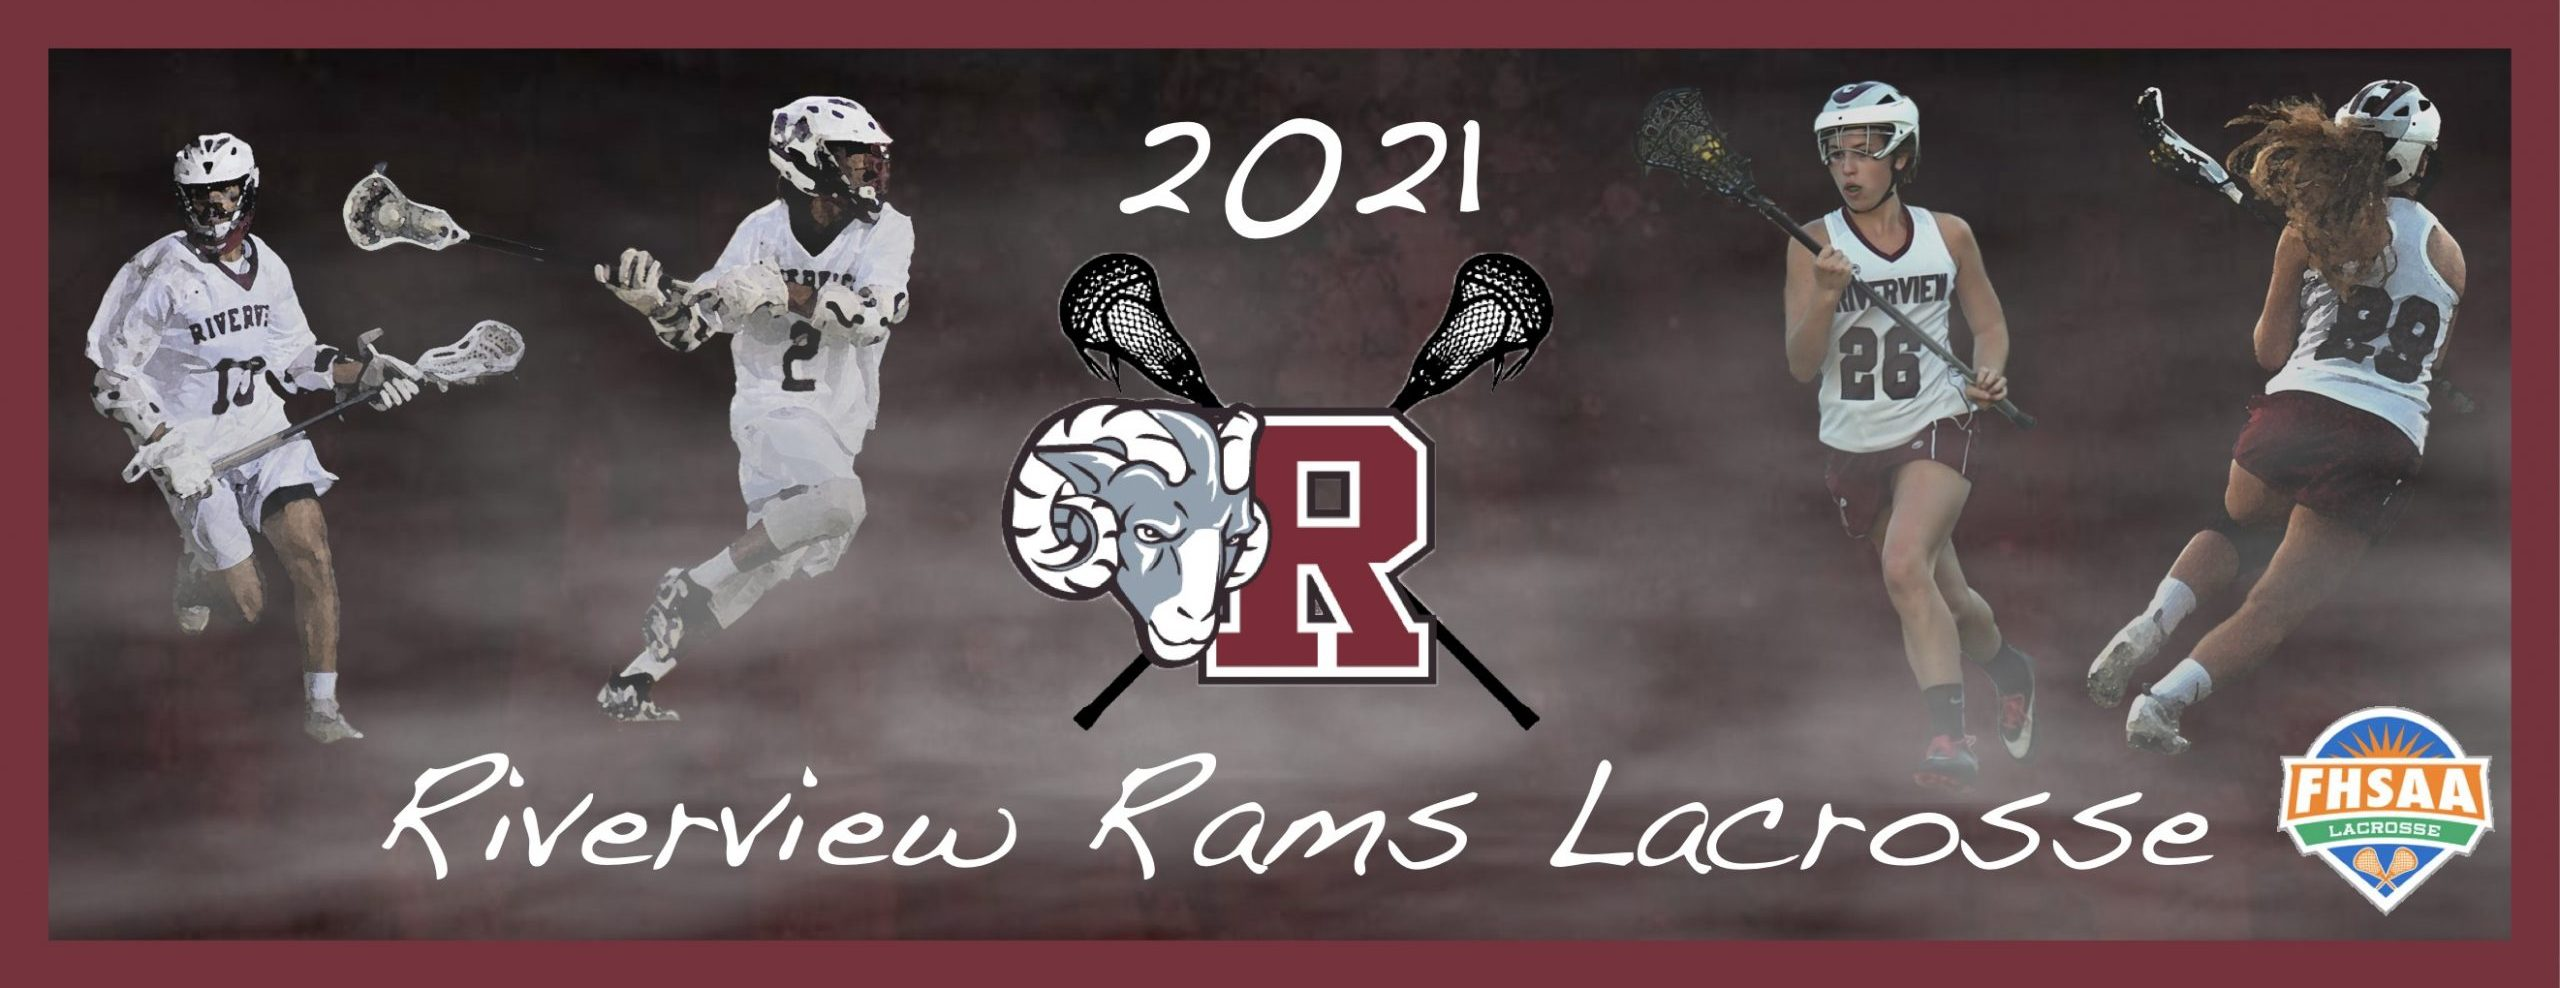 2021 HomePage Banner